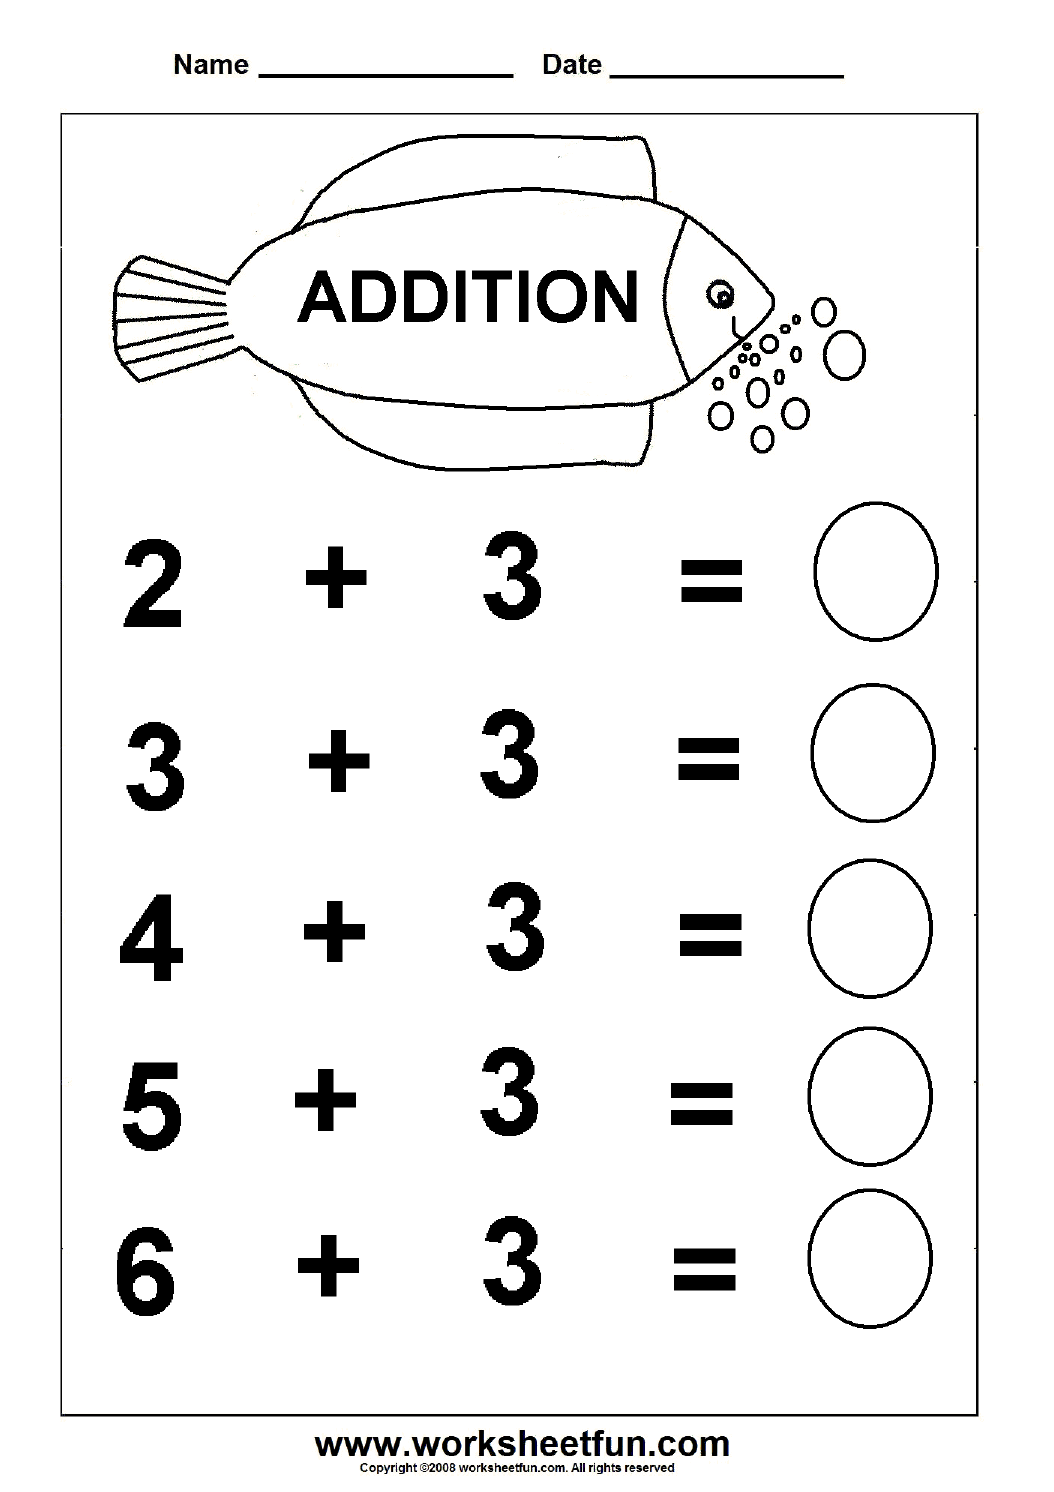 Addition Basic Addition Facts FREE Printable Worksheets – Free Basic Addition Worksheets